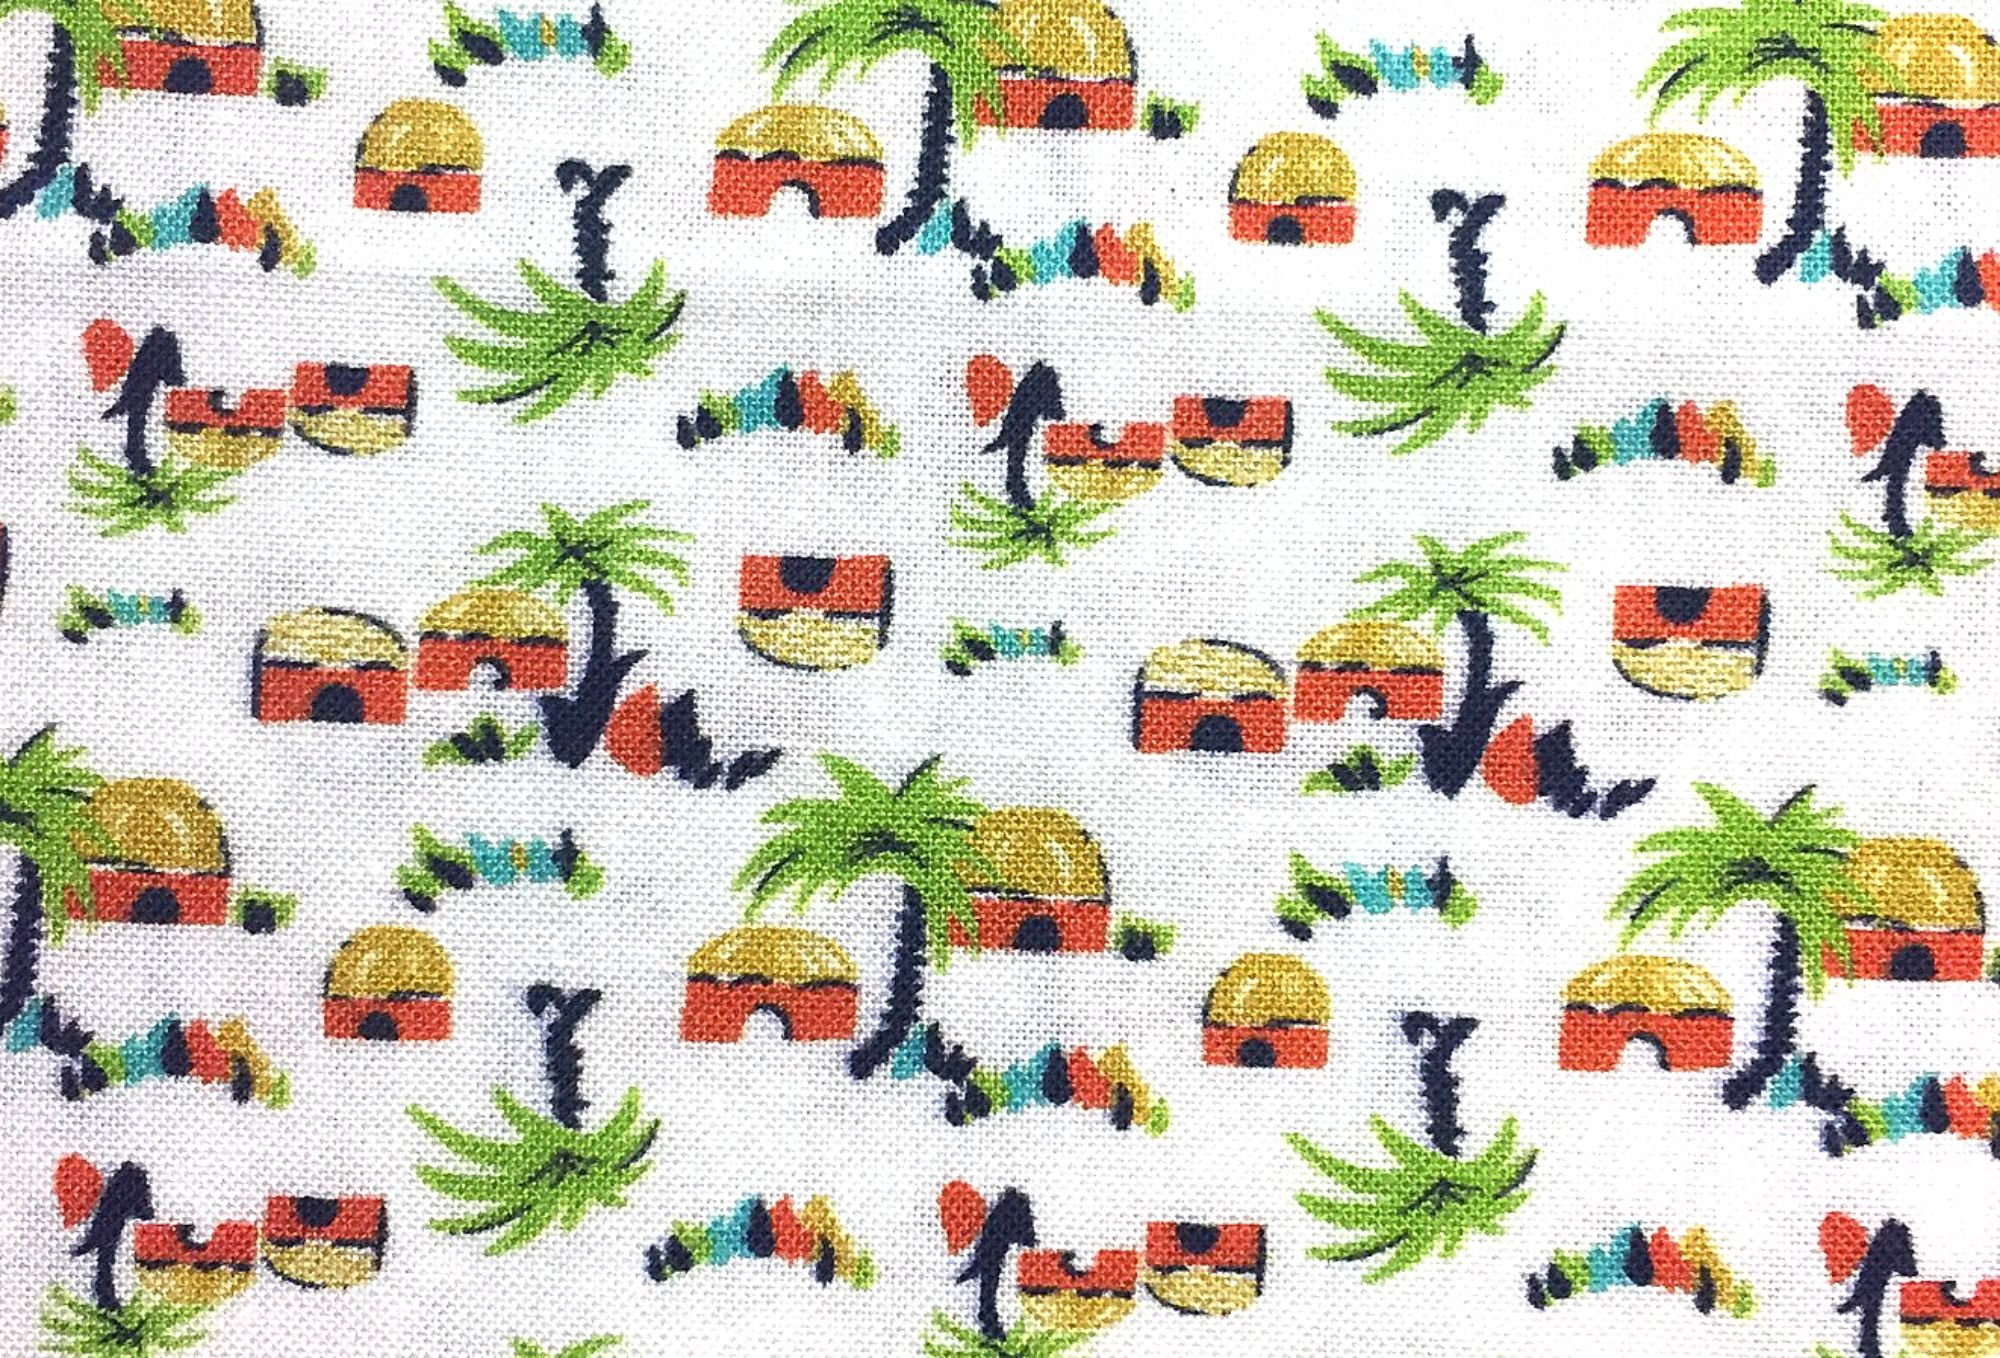 Small Wonders of the World SOUTH PACIFIC Retro Island Palm Trees Huts Cotton Quilt Fabric MD382